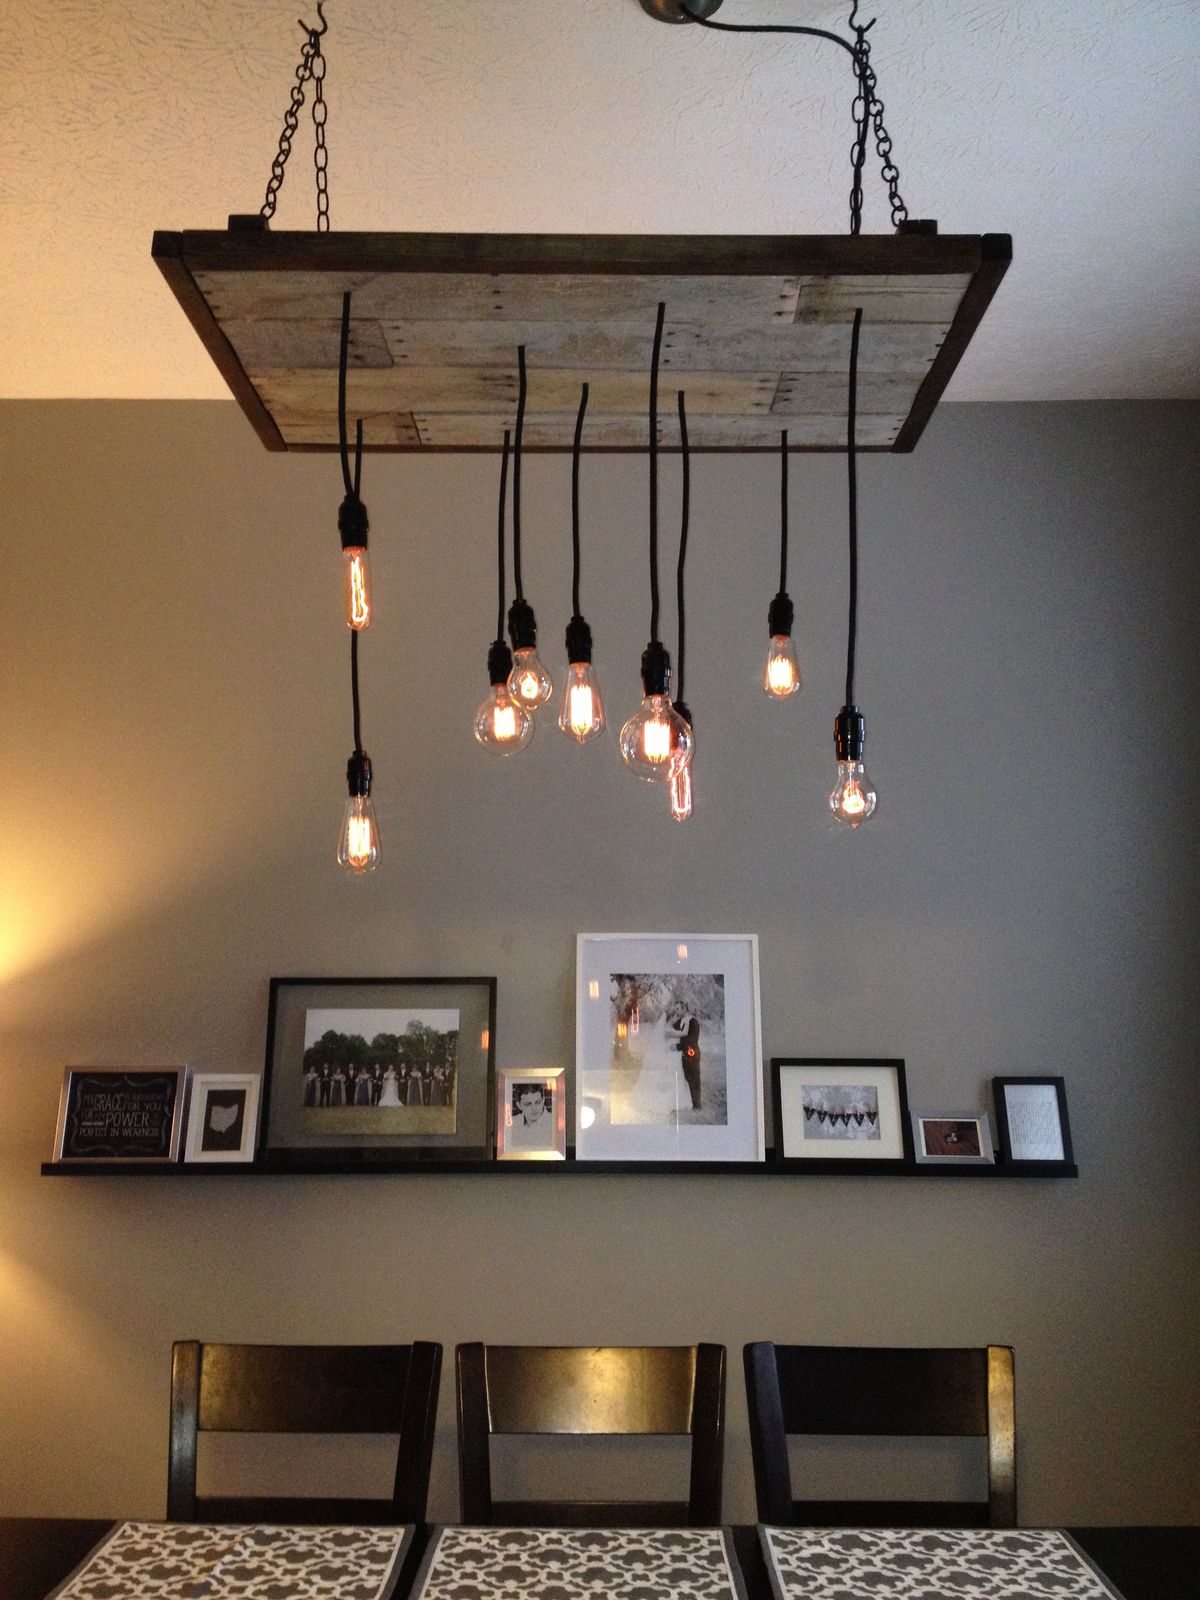 1000 images about ideas for the house on pinterest - Diy industrial chandelier ...